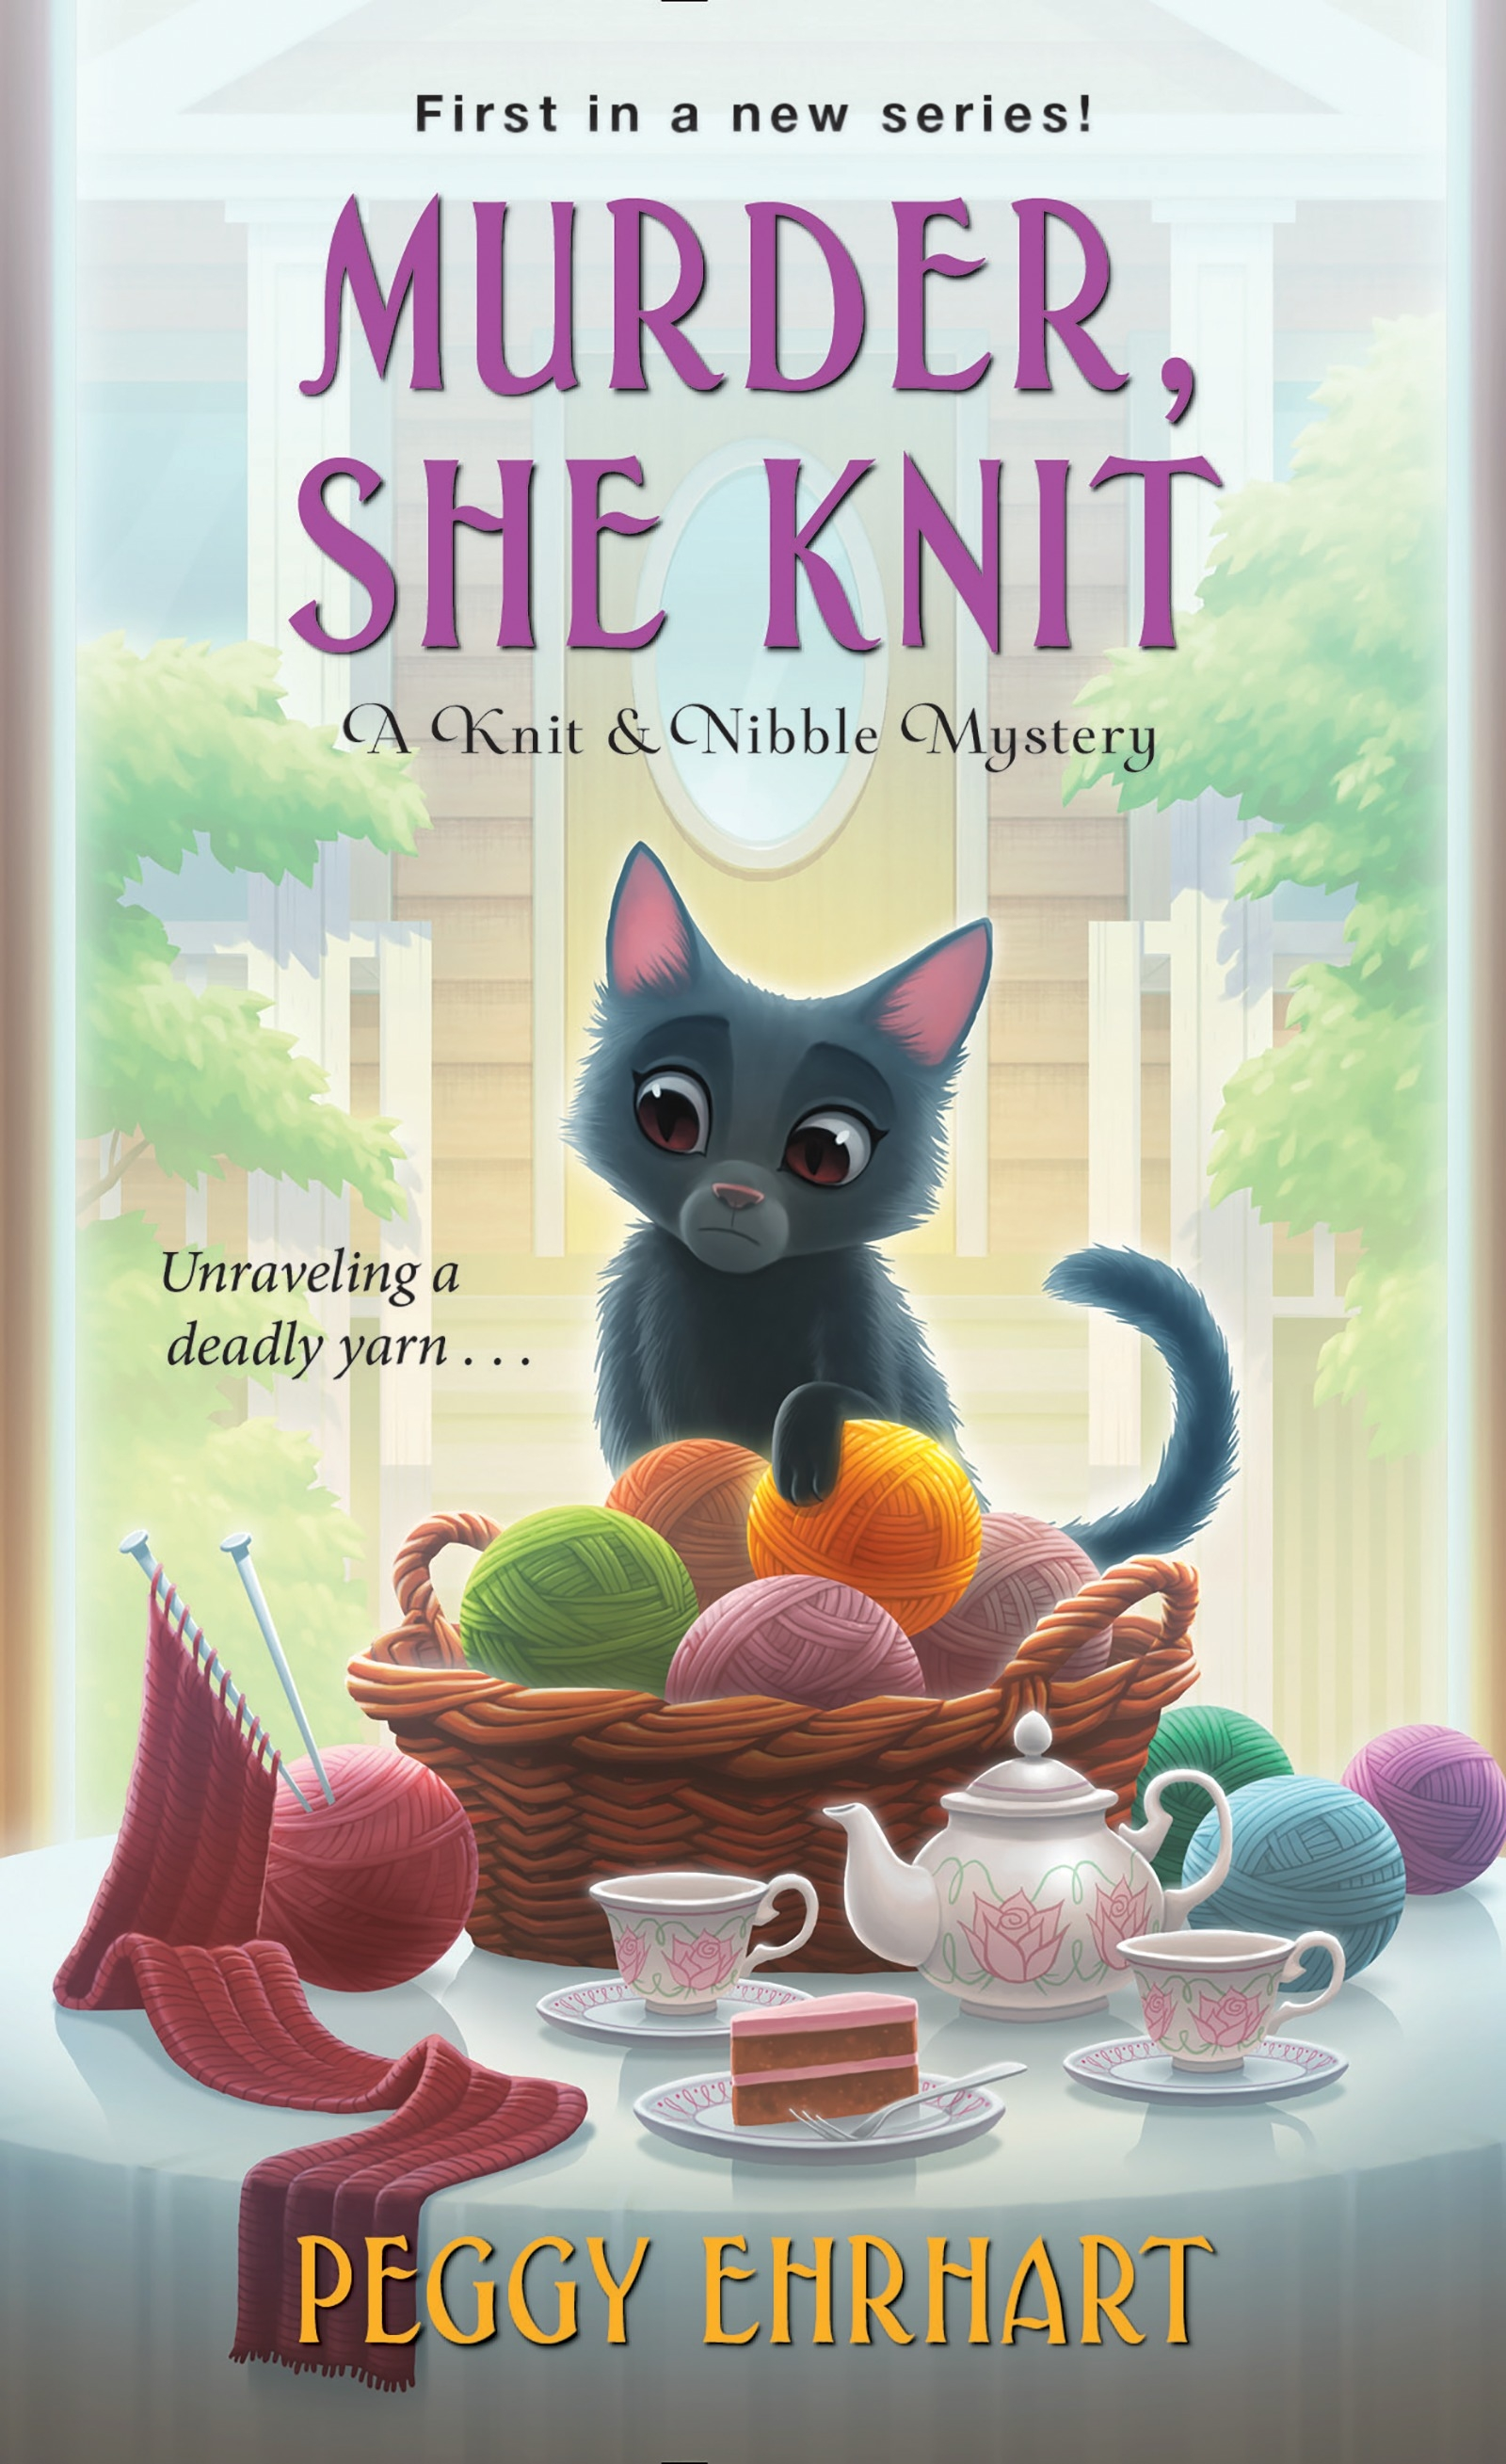 Murder, She Knit (A Knit and Nibble Mystery) (Knit & Nibble Mystery) by Peggy Ehrhart, ISBN: 9781496713278